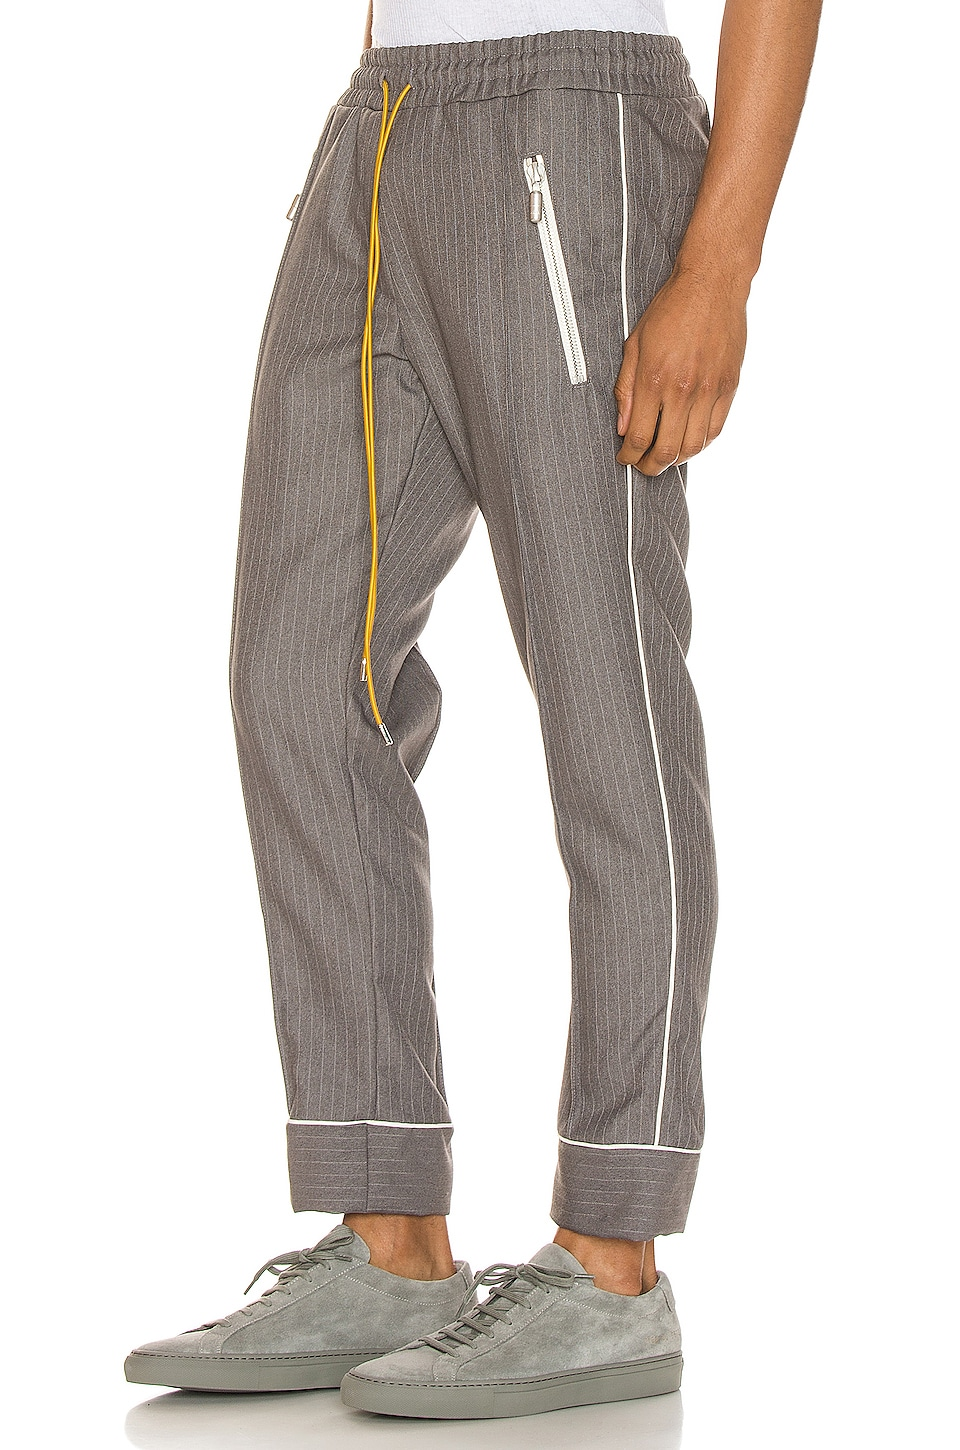 Rhude Smoking Pant in Grey & White